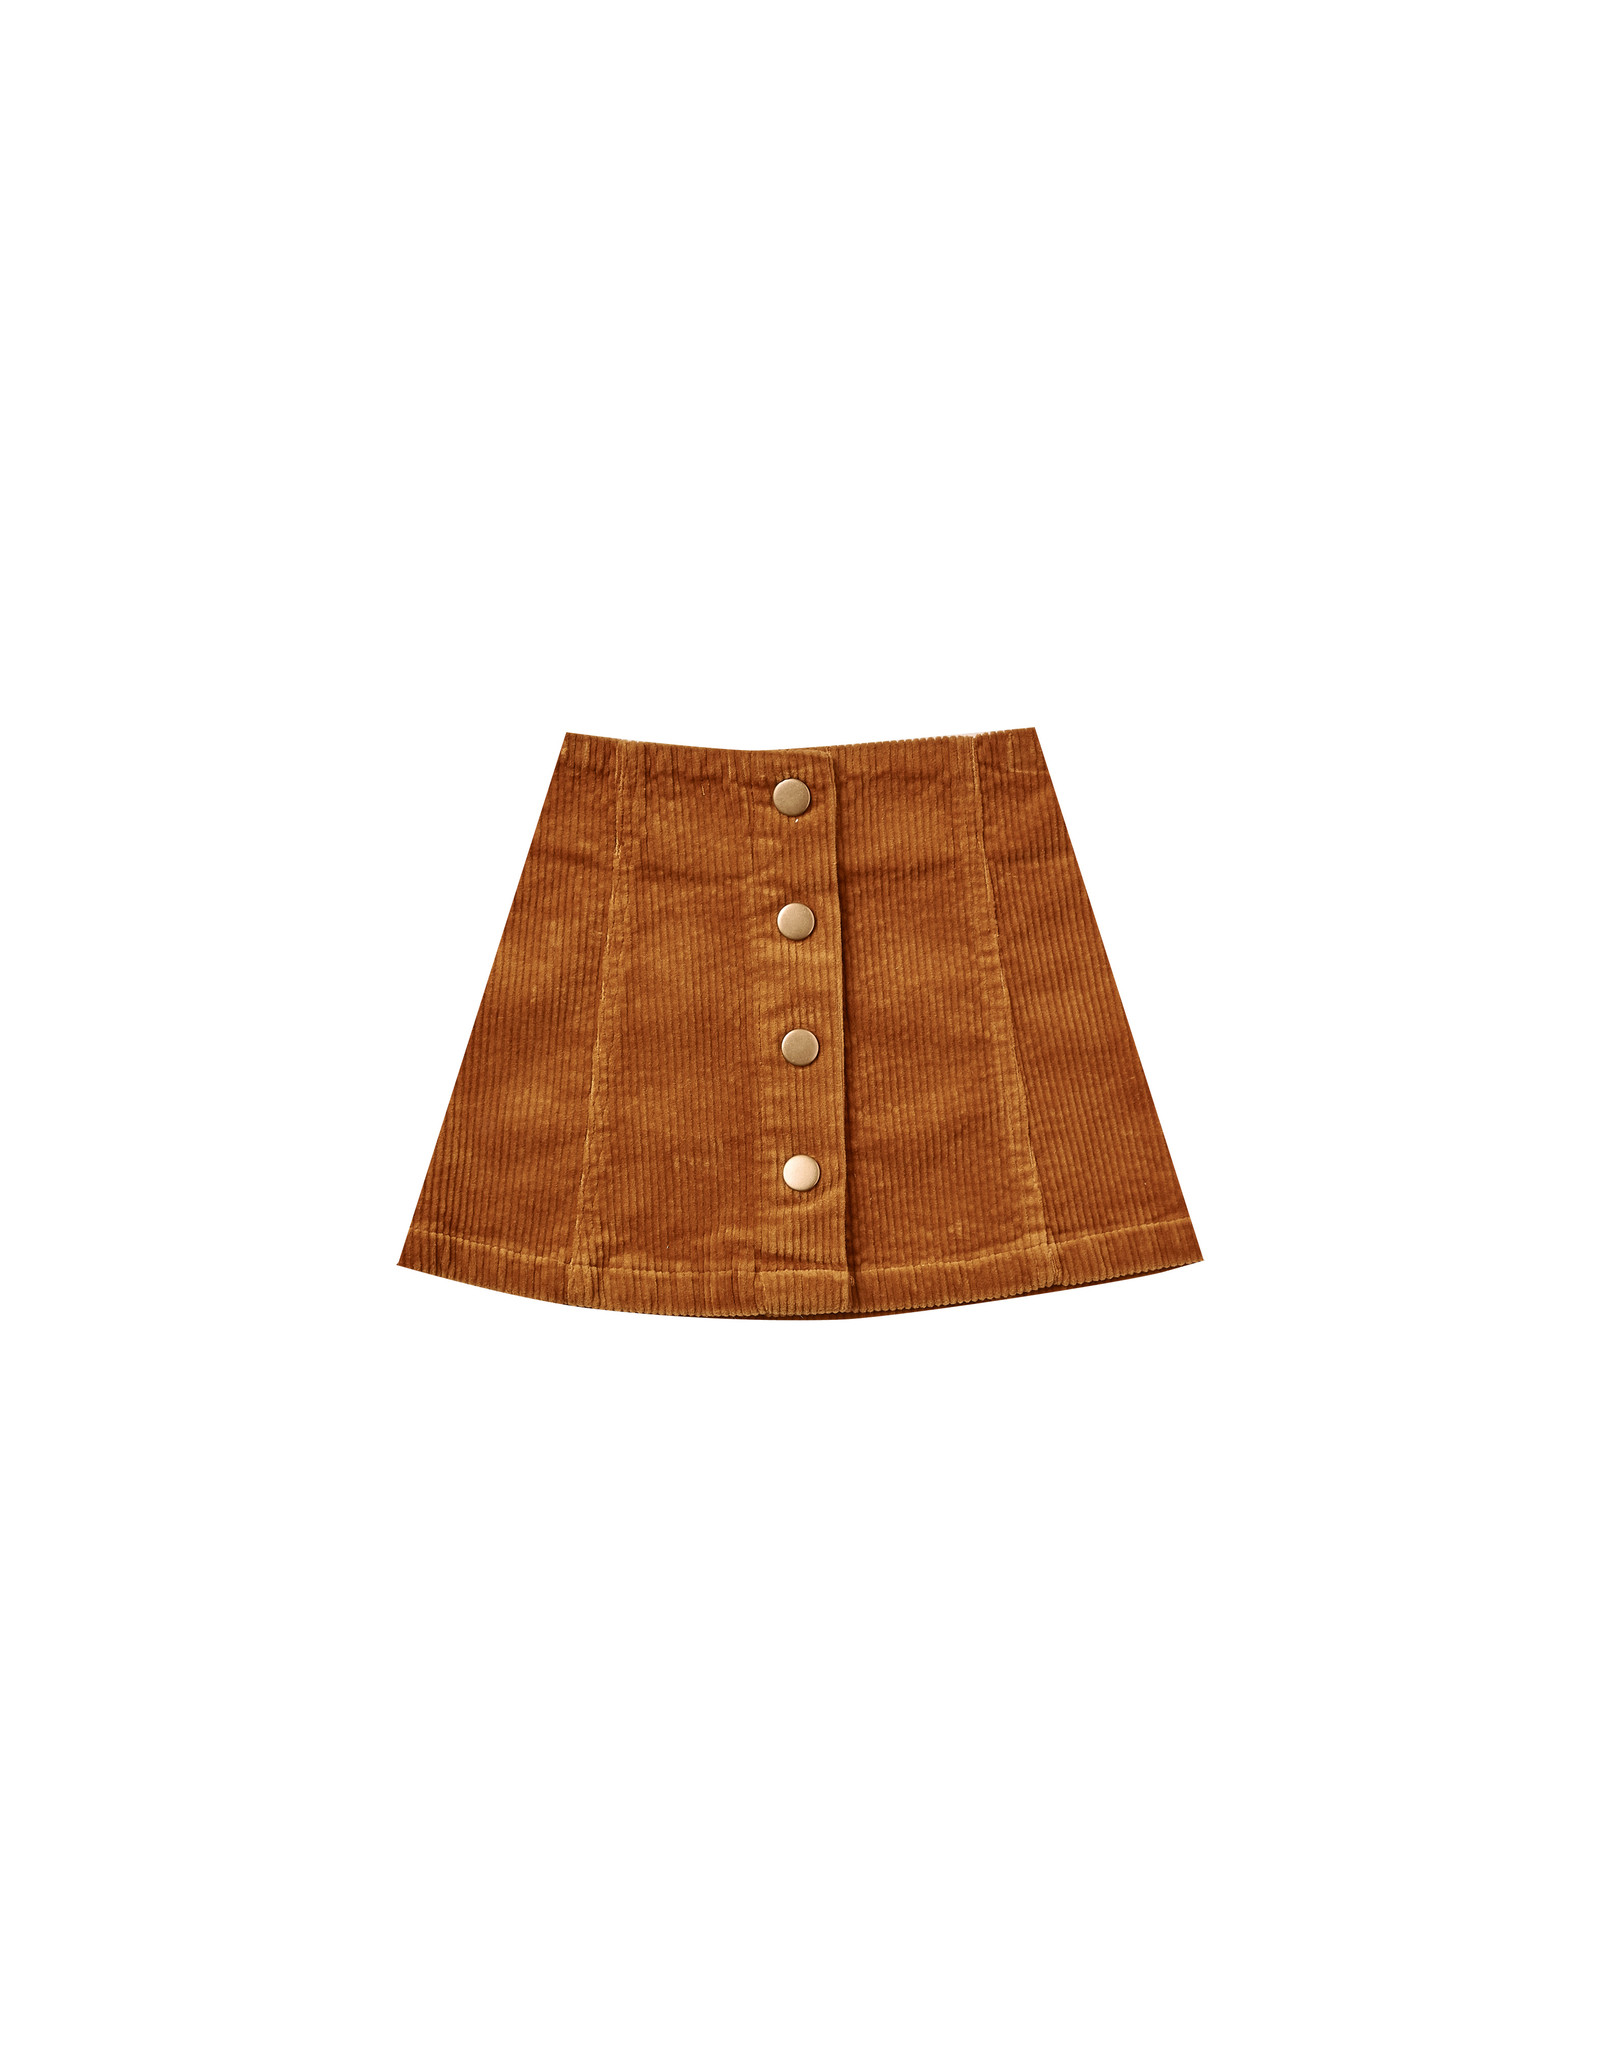 Rylee + Cru Corduroy Mini Skirt - Cinnamon